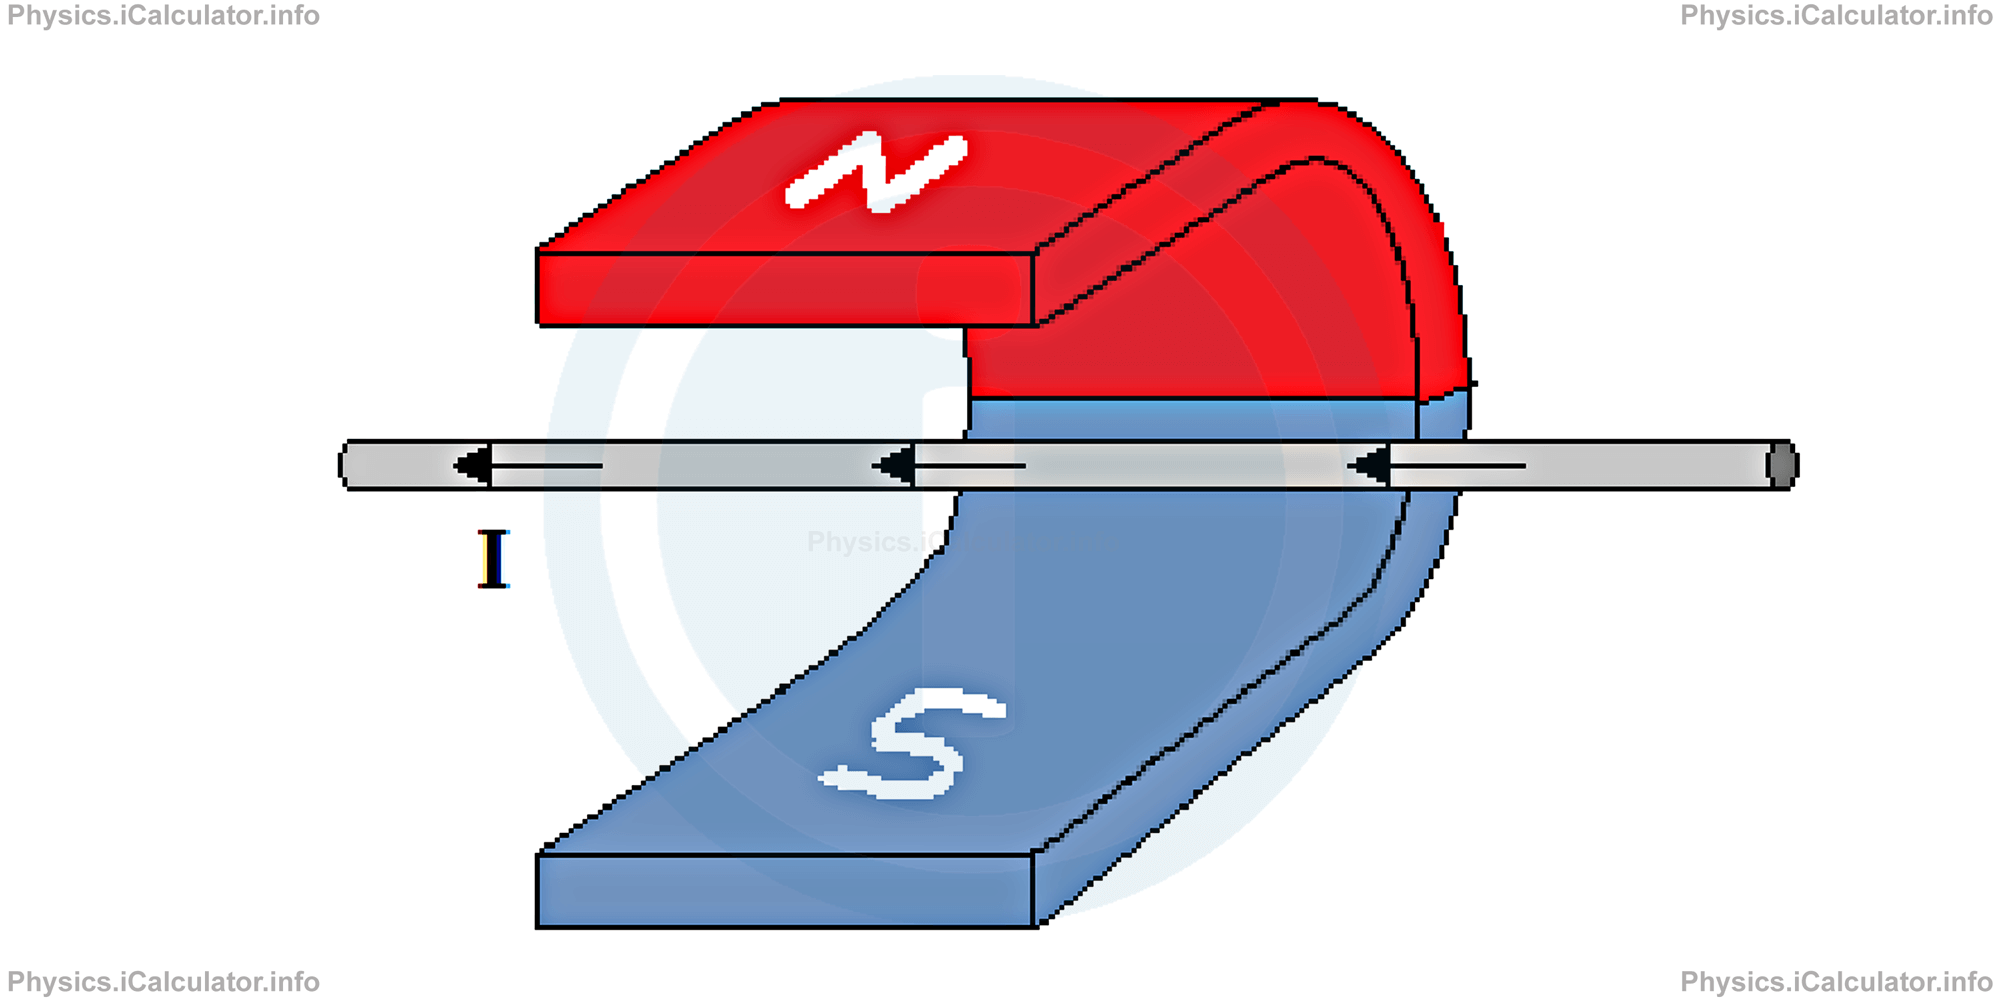 Physics Tutorials: This image provides visual information for the physics tutorial Magnetic Force on a Wire Moving Inside a Magnetic Field. Lorentz Force